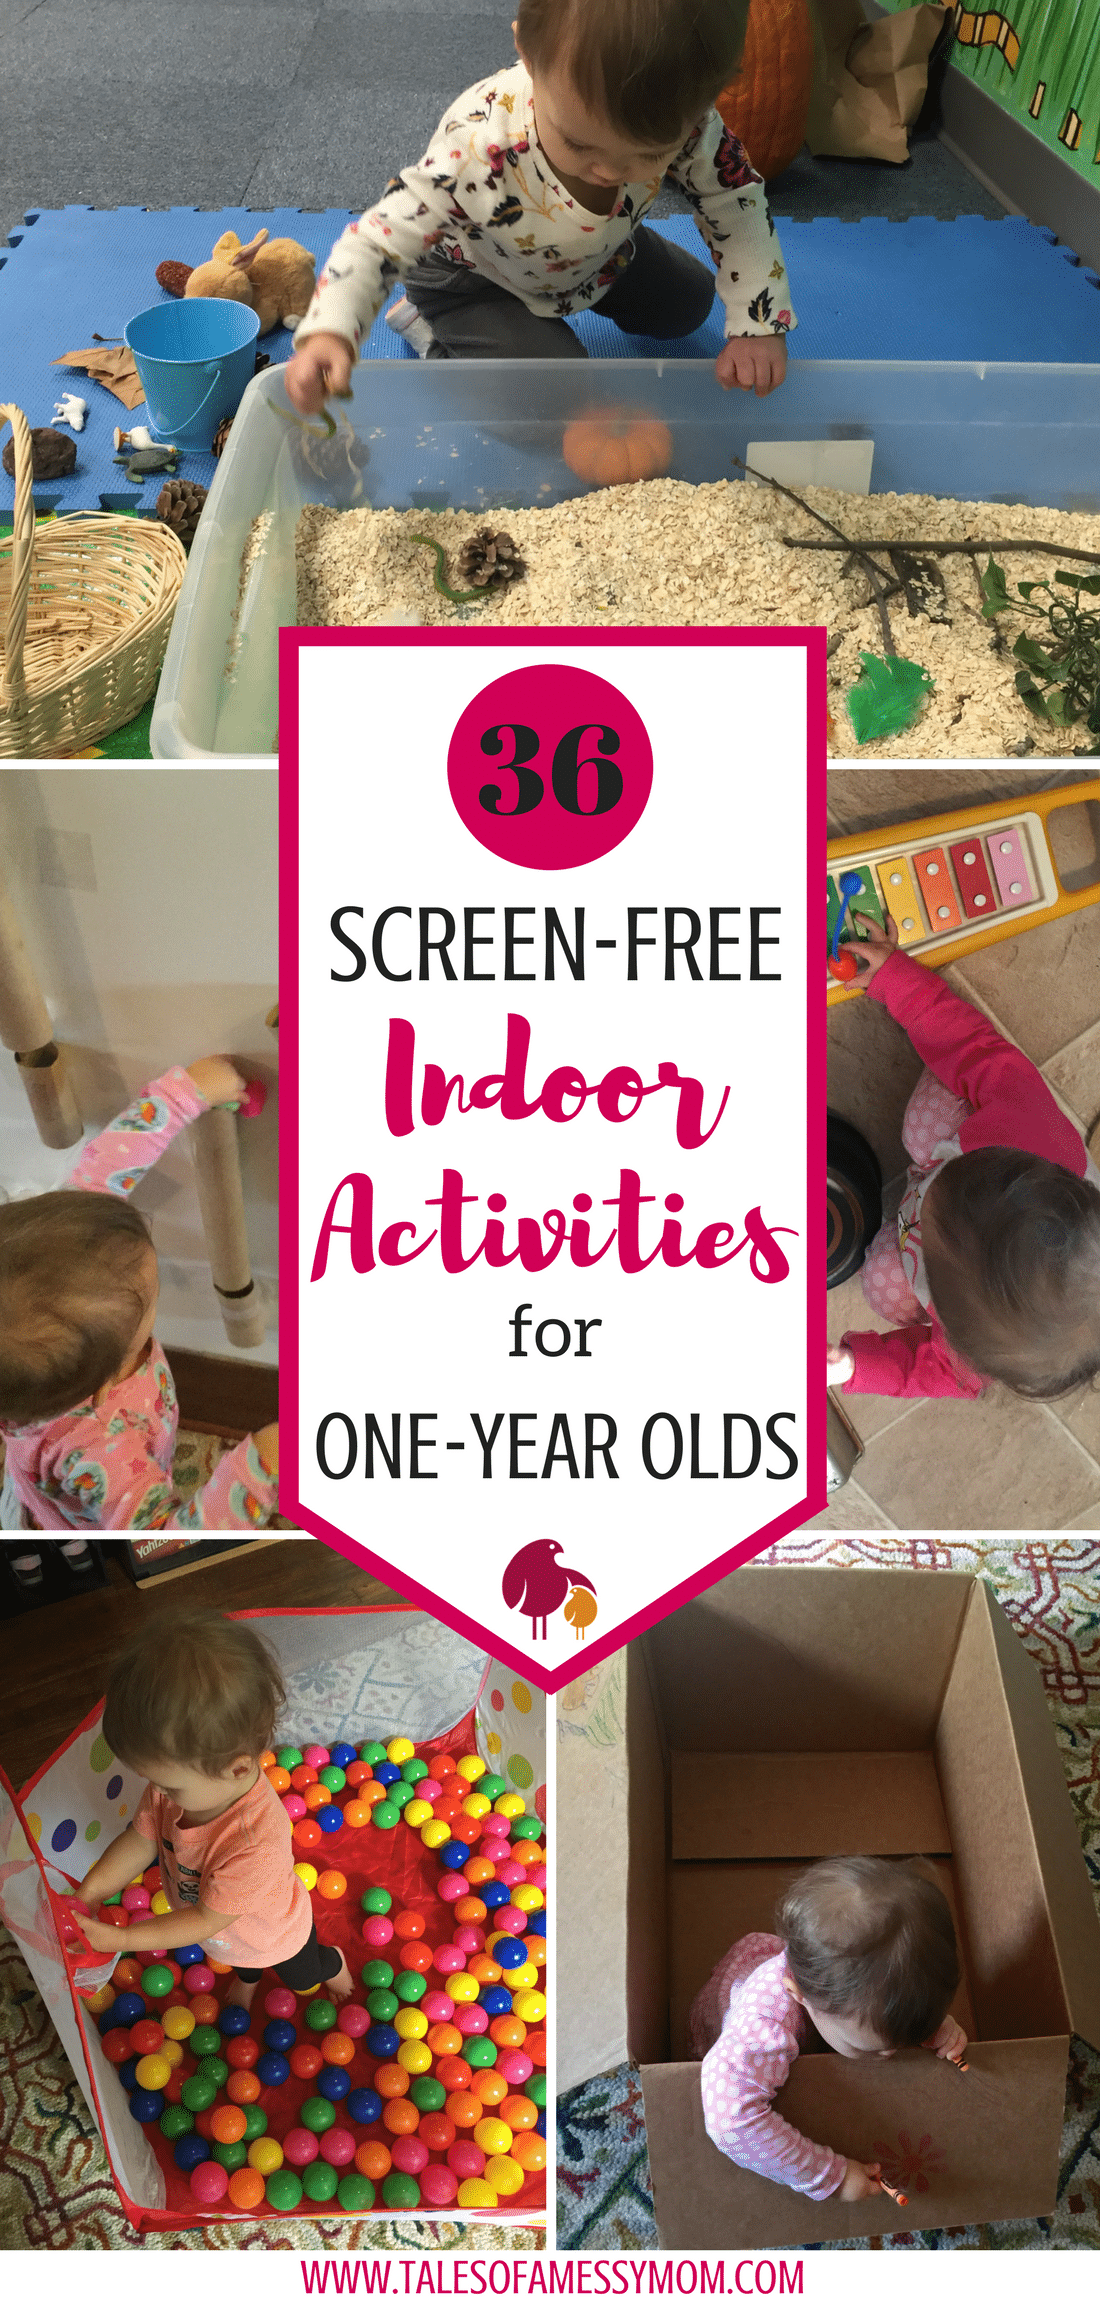 36 screen-free indoor activities to keep your one year old occupied during those rainy and snowy days. Encourage play, support development, and increase language and motor skills with these activities. Plus, indoor activities that will get you out of the house if you're starting to get cabin fever. http://www.talesofamessymom.com